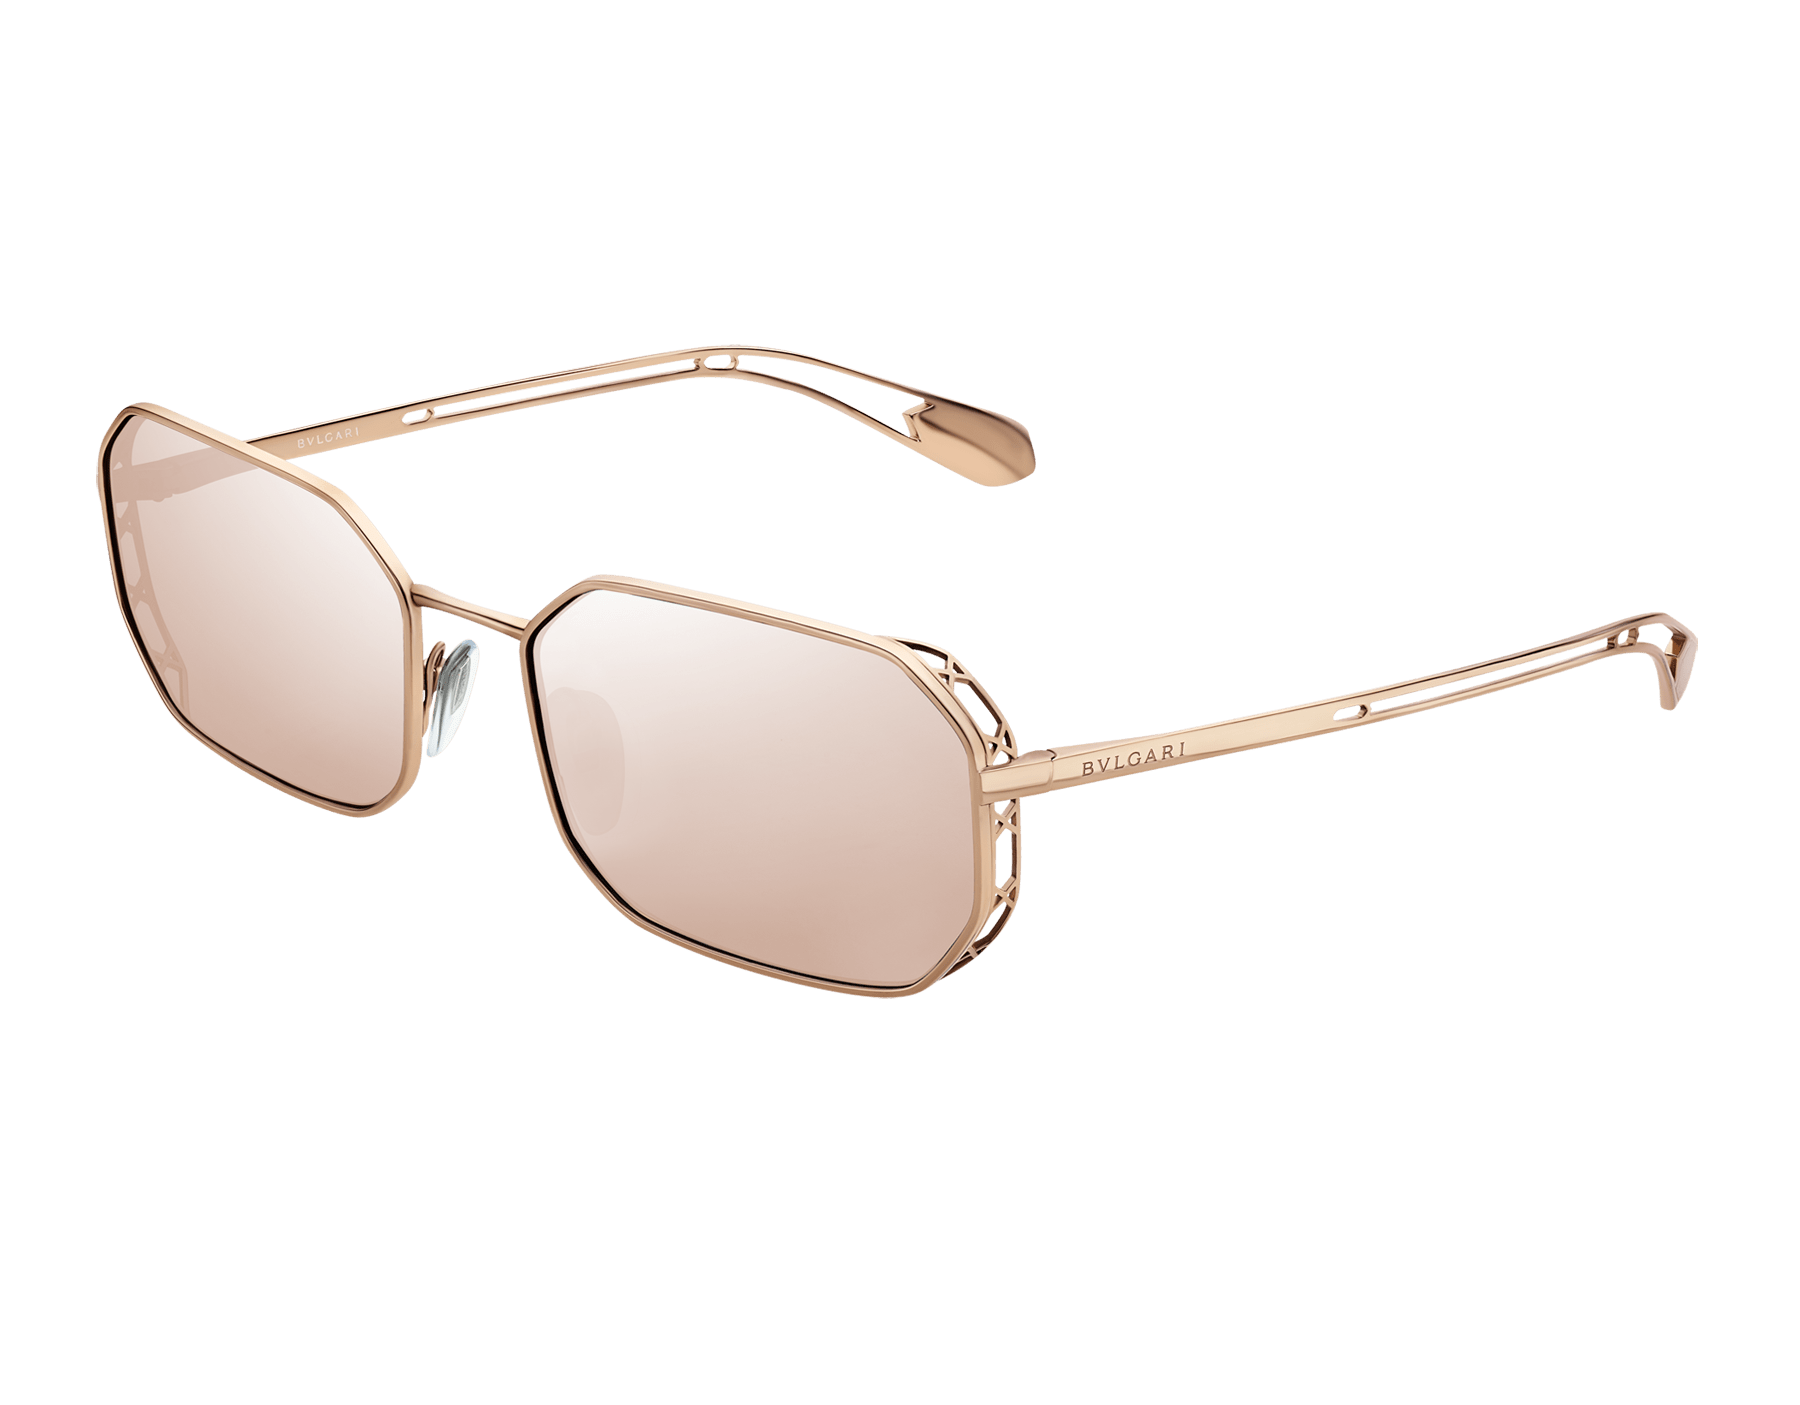 Bvlgari Serpenti Narrowmation rectangular aviator metal sunglasses. 903861 image 1